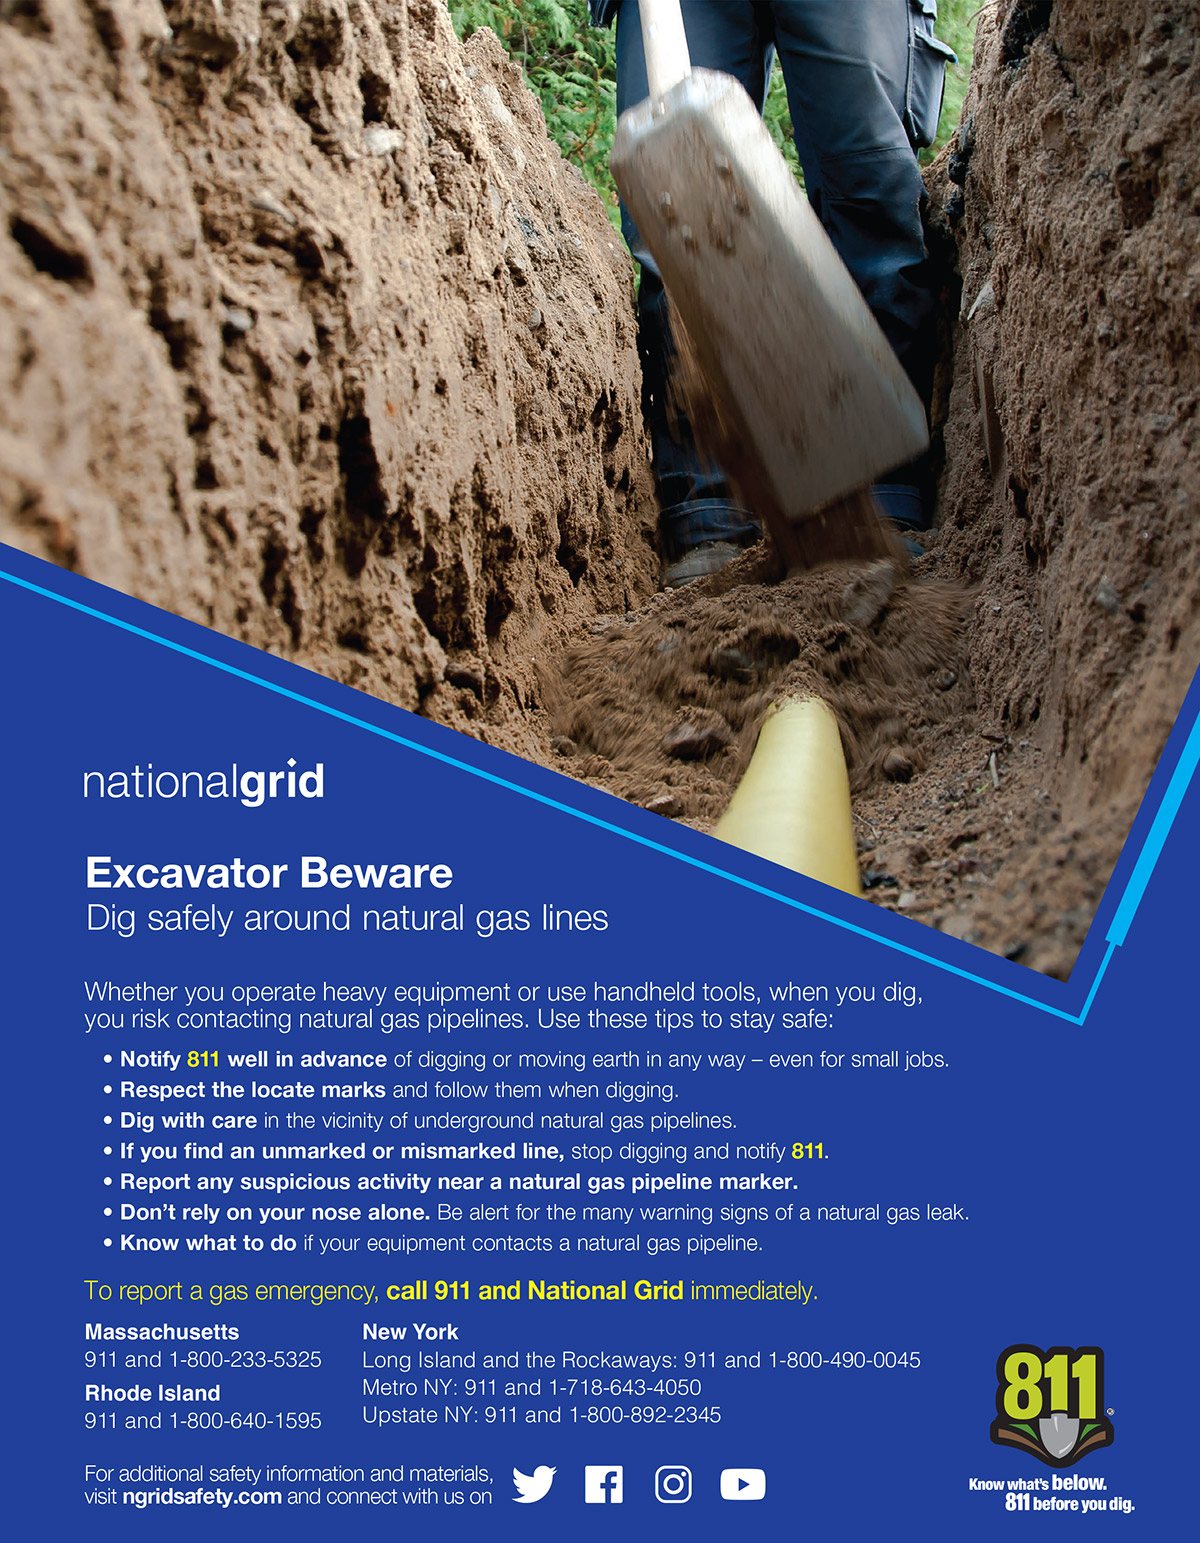 nationalgrid: Excavator Beware. Dig safely around natural gas lines